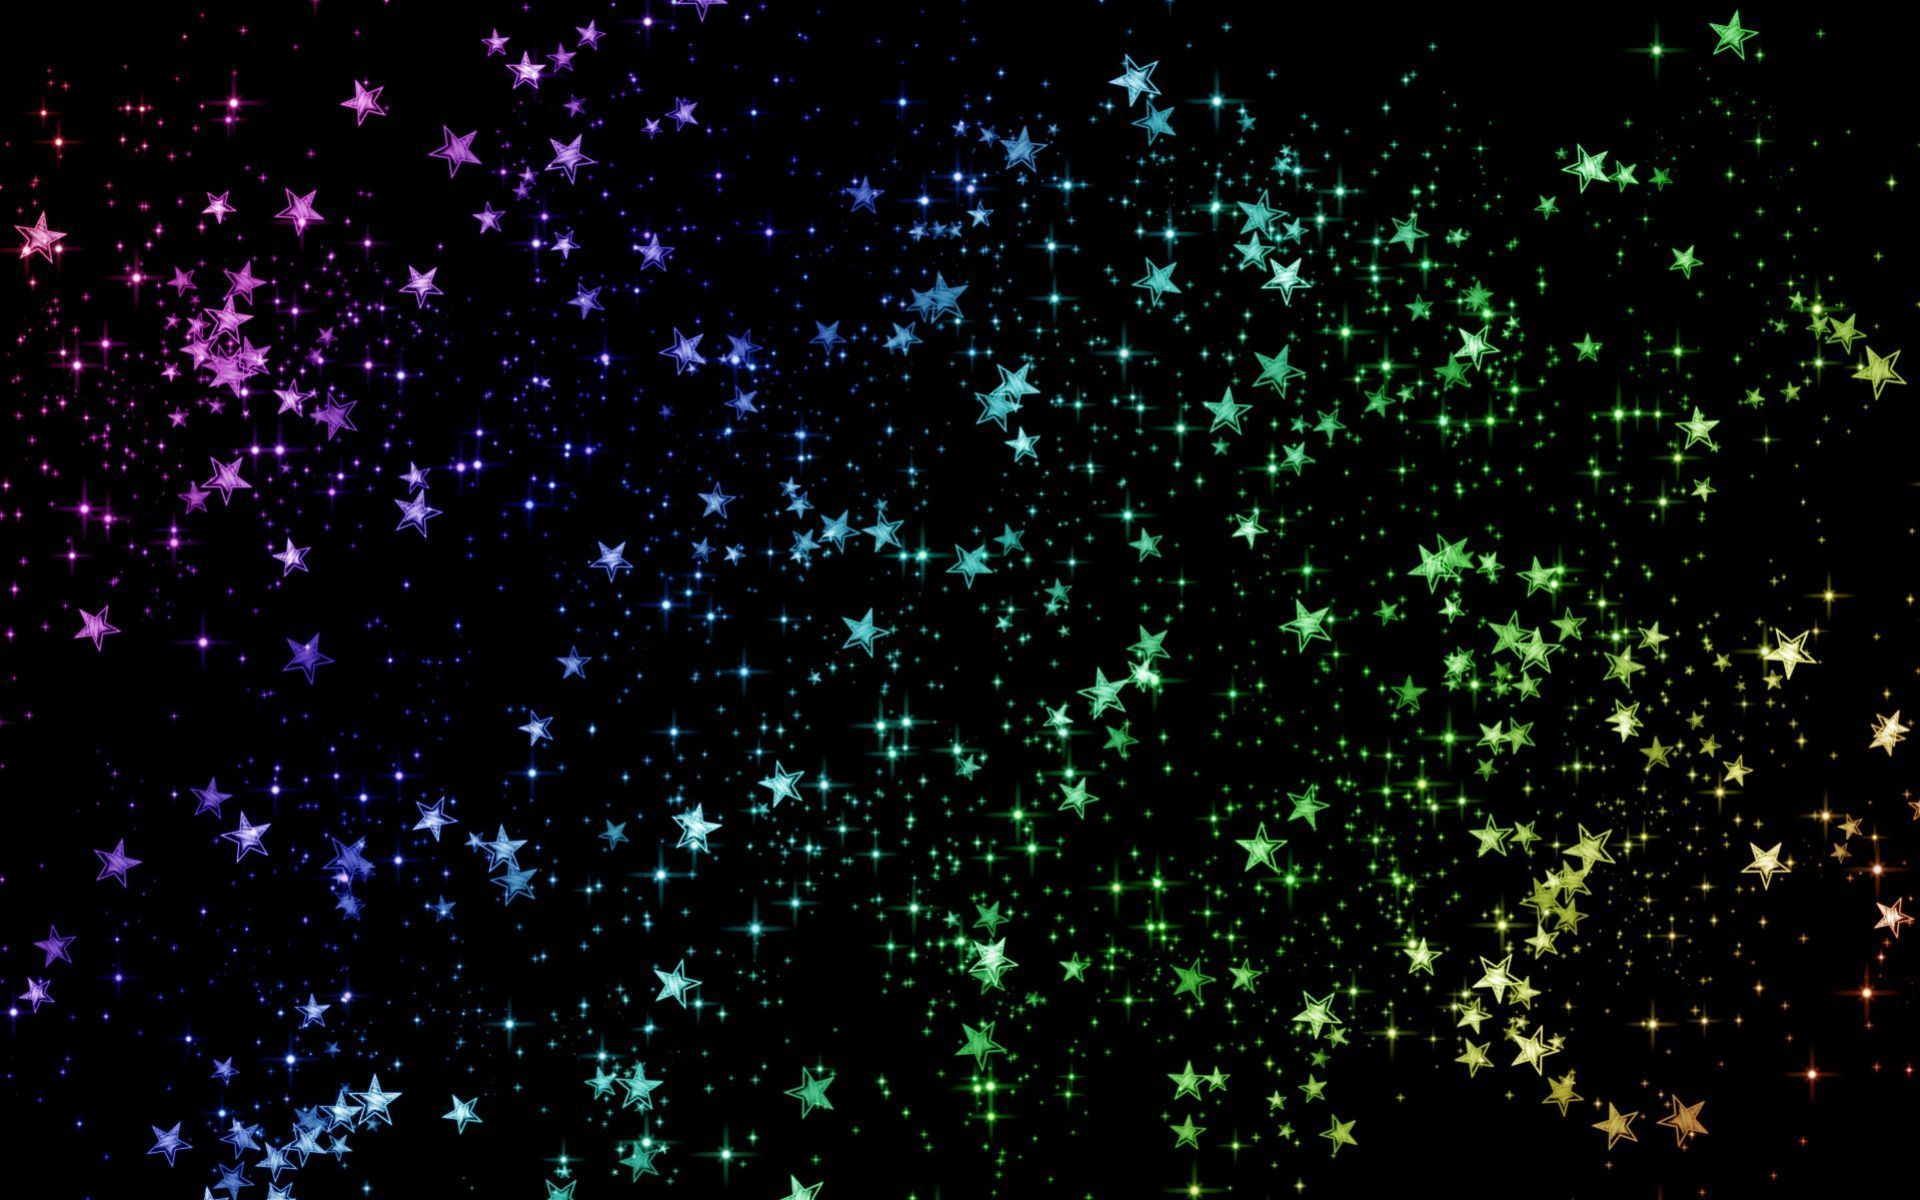 free sparkly wallpaper 24029